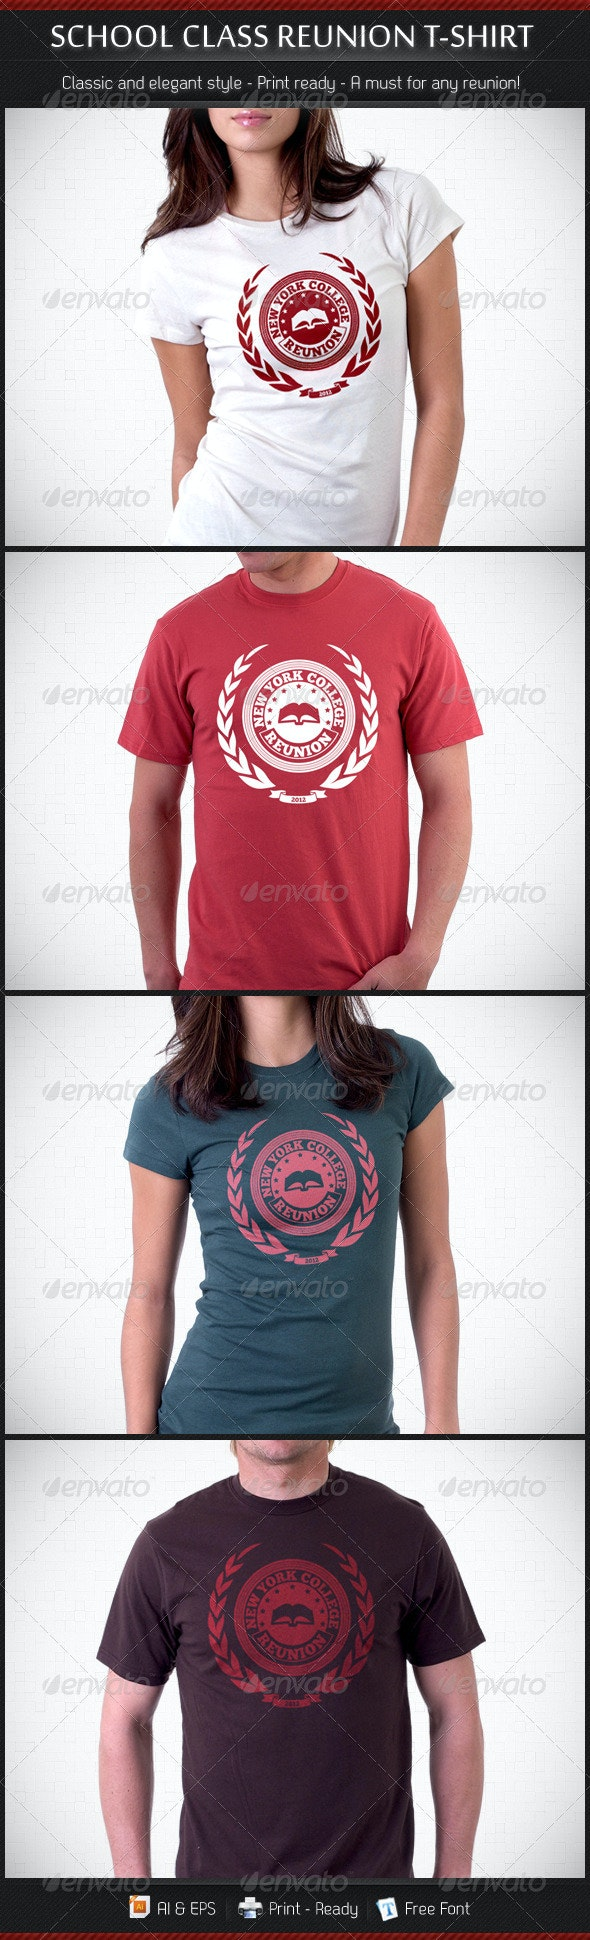 School Class Re-Union T-Shirt Template - Events T-Shirts